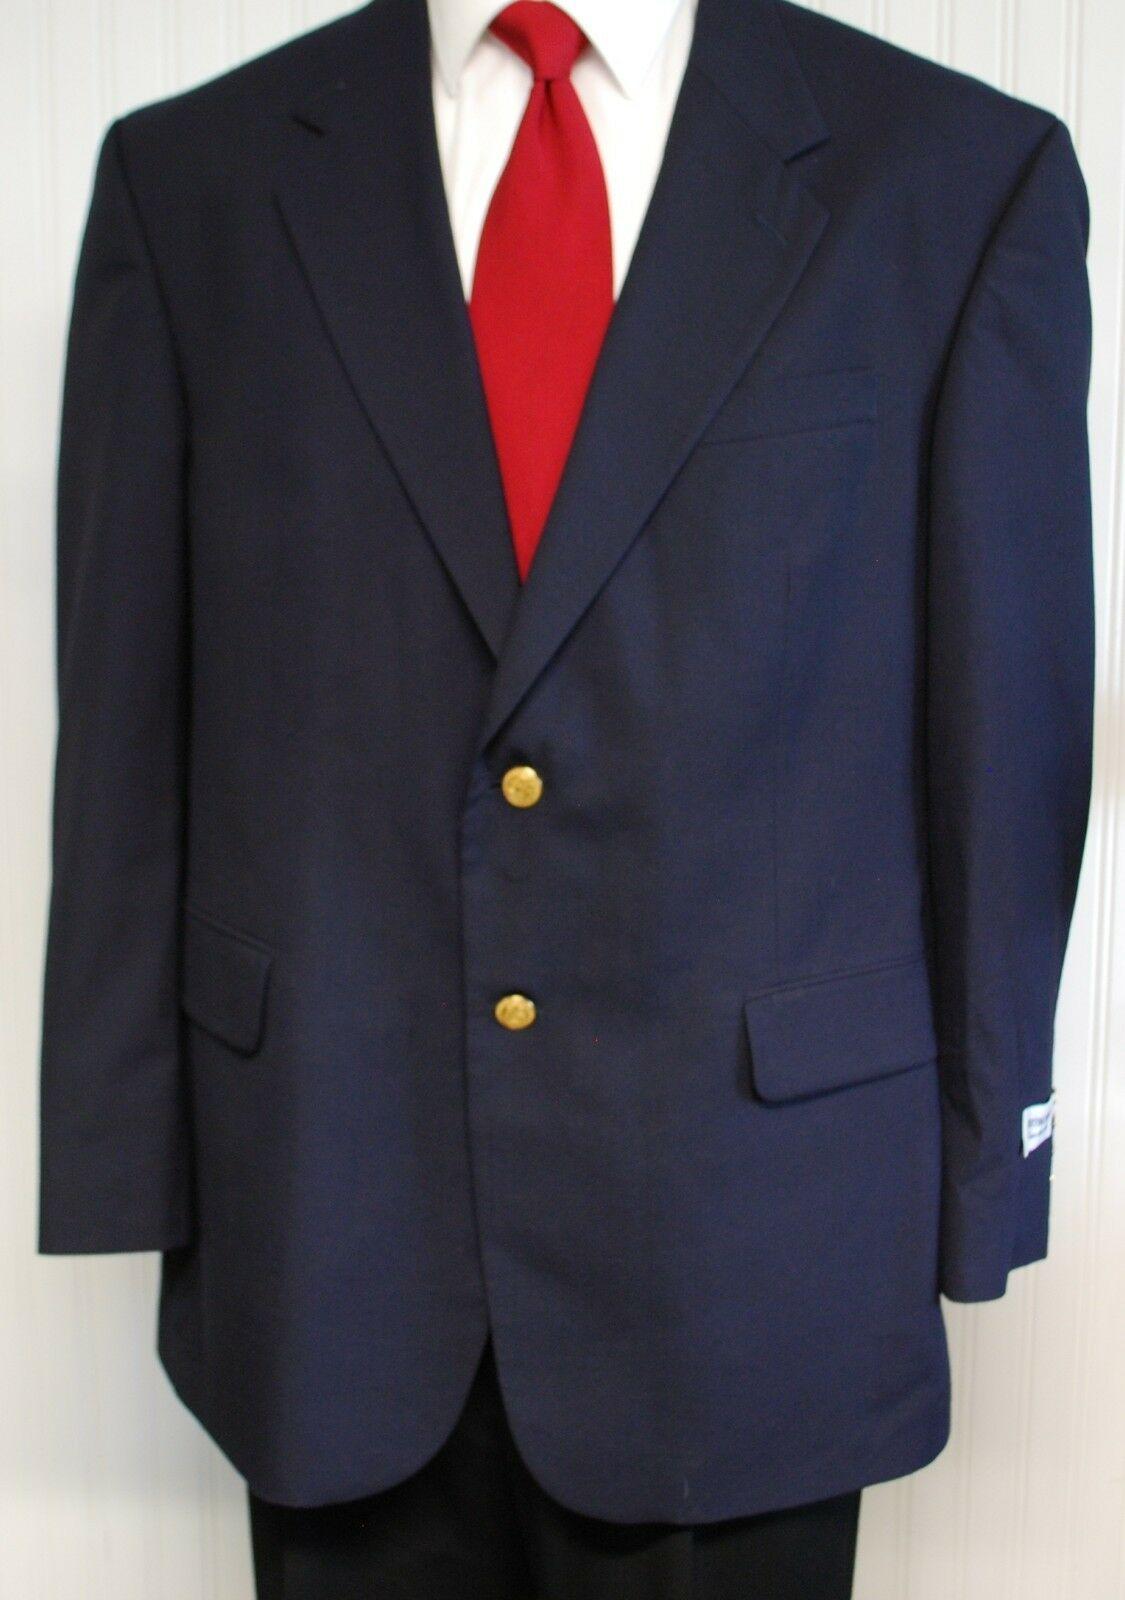 Meeting Street 46 R Navy Blazer 100% Wool New With Tags Very Good Condition